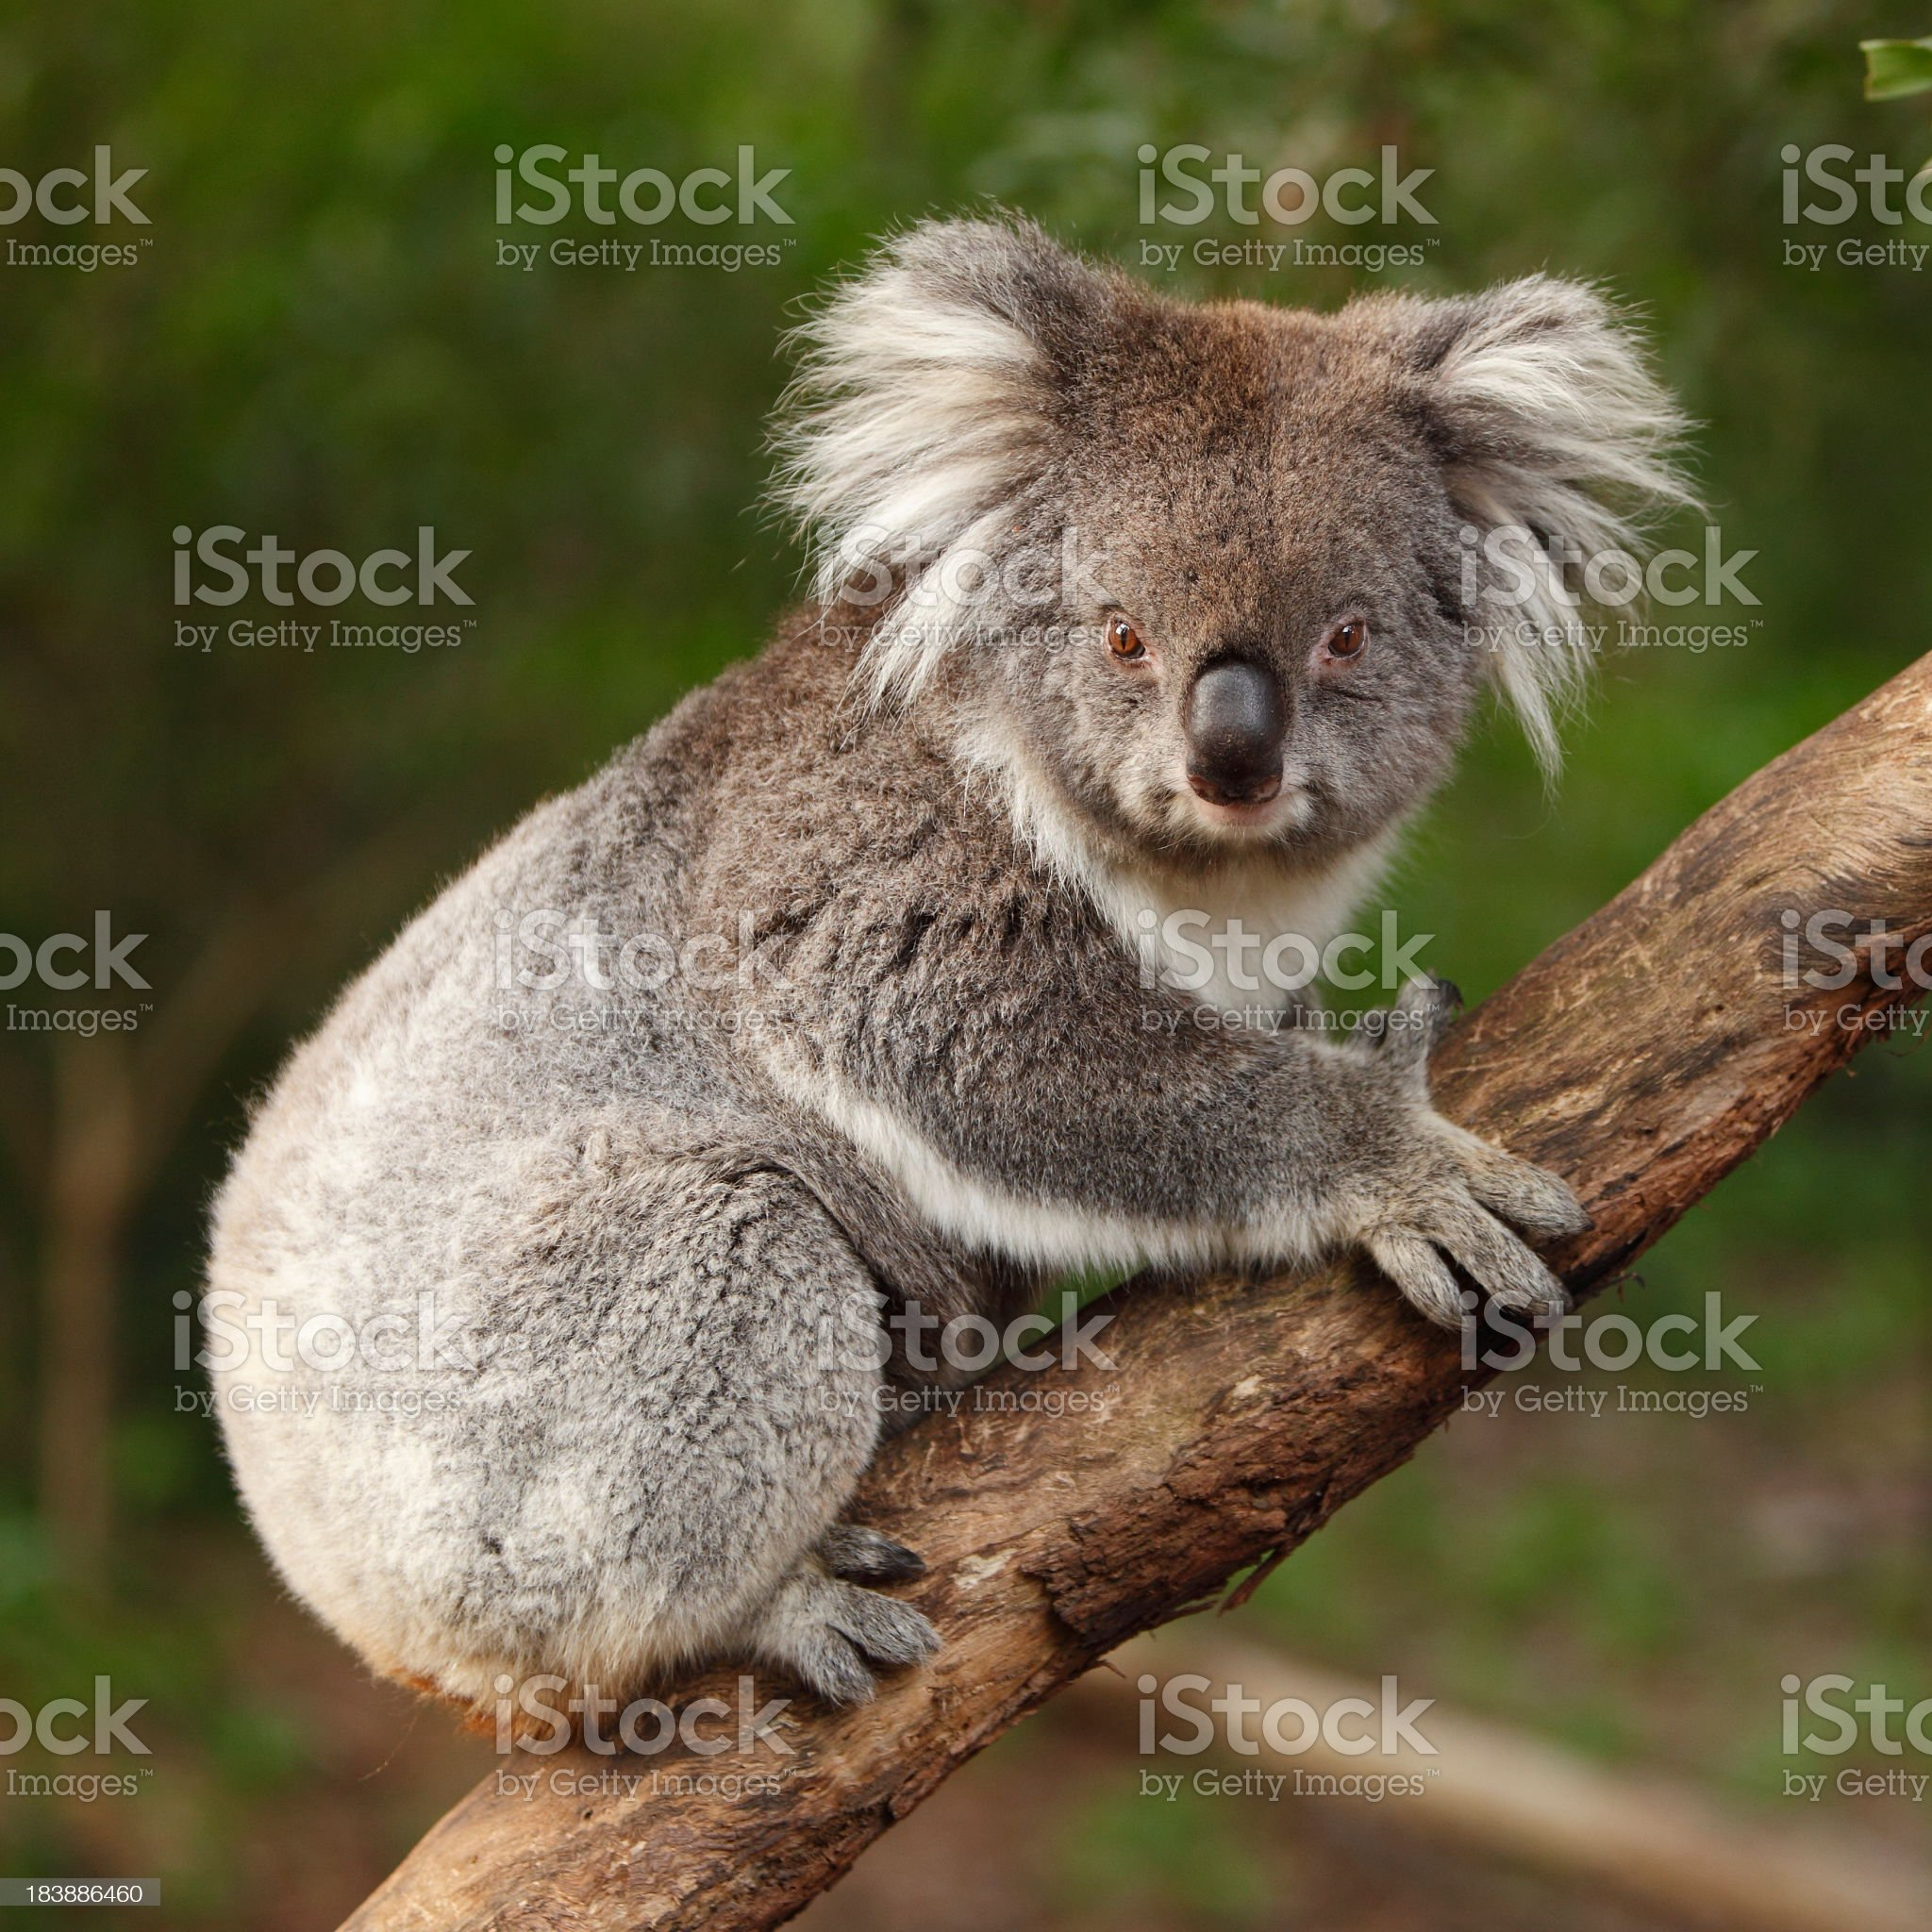 A Koala in a forest that looks to be hanging on to a tree  royalty-free stock photo